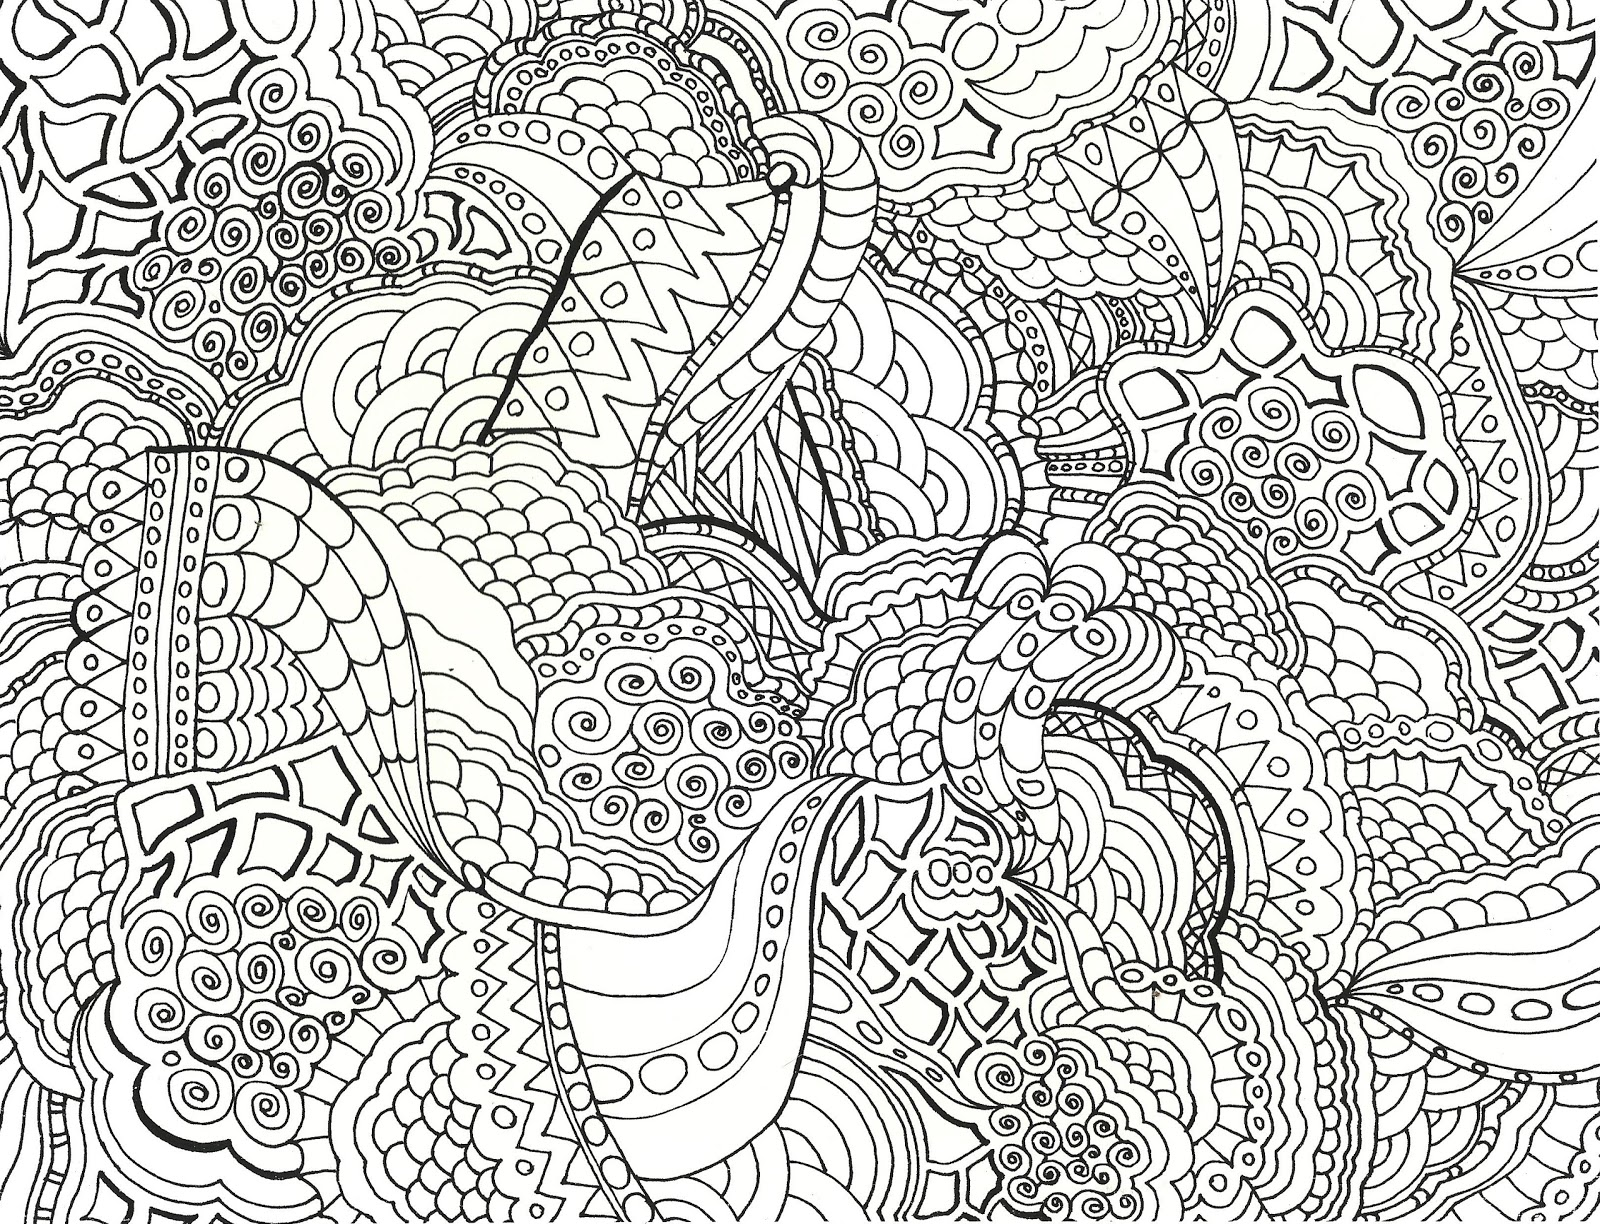 byrds words  coloring books for grown